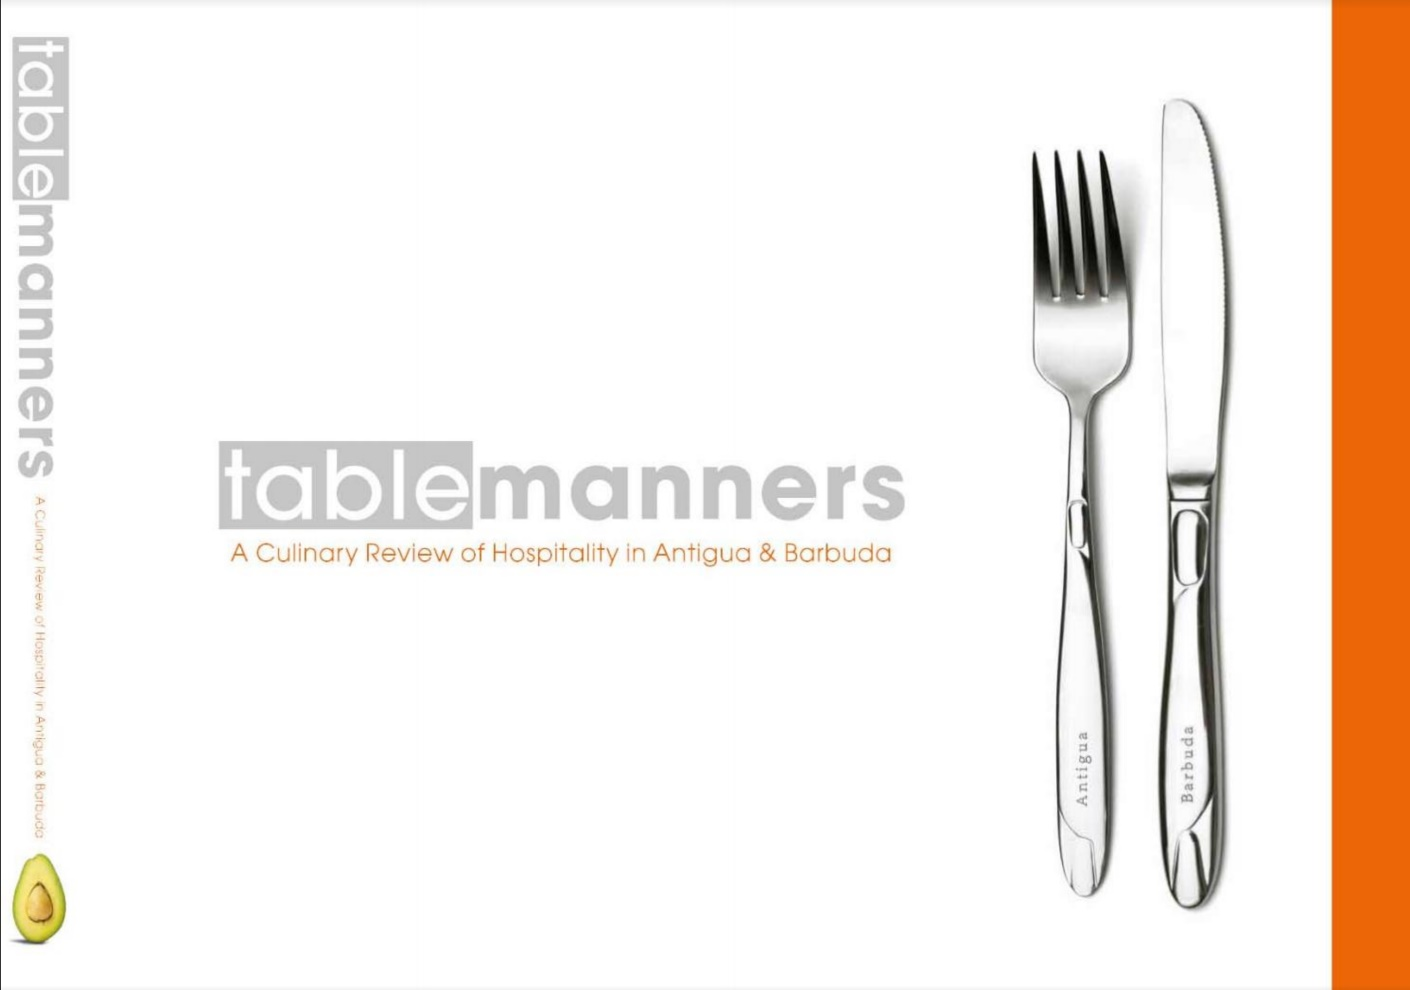 Food and Drink table manners 2011 issue.jpg